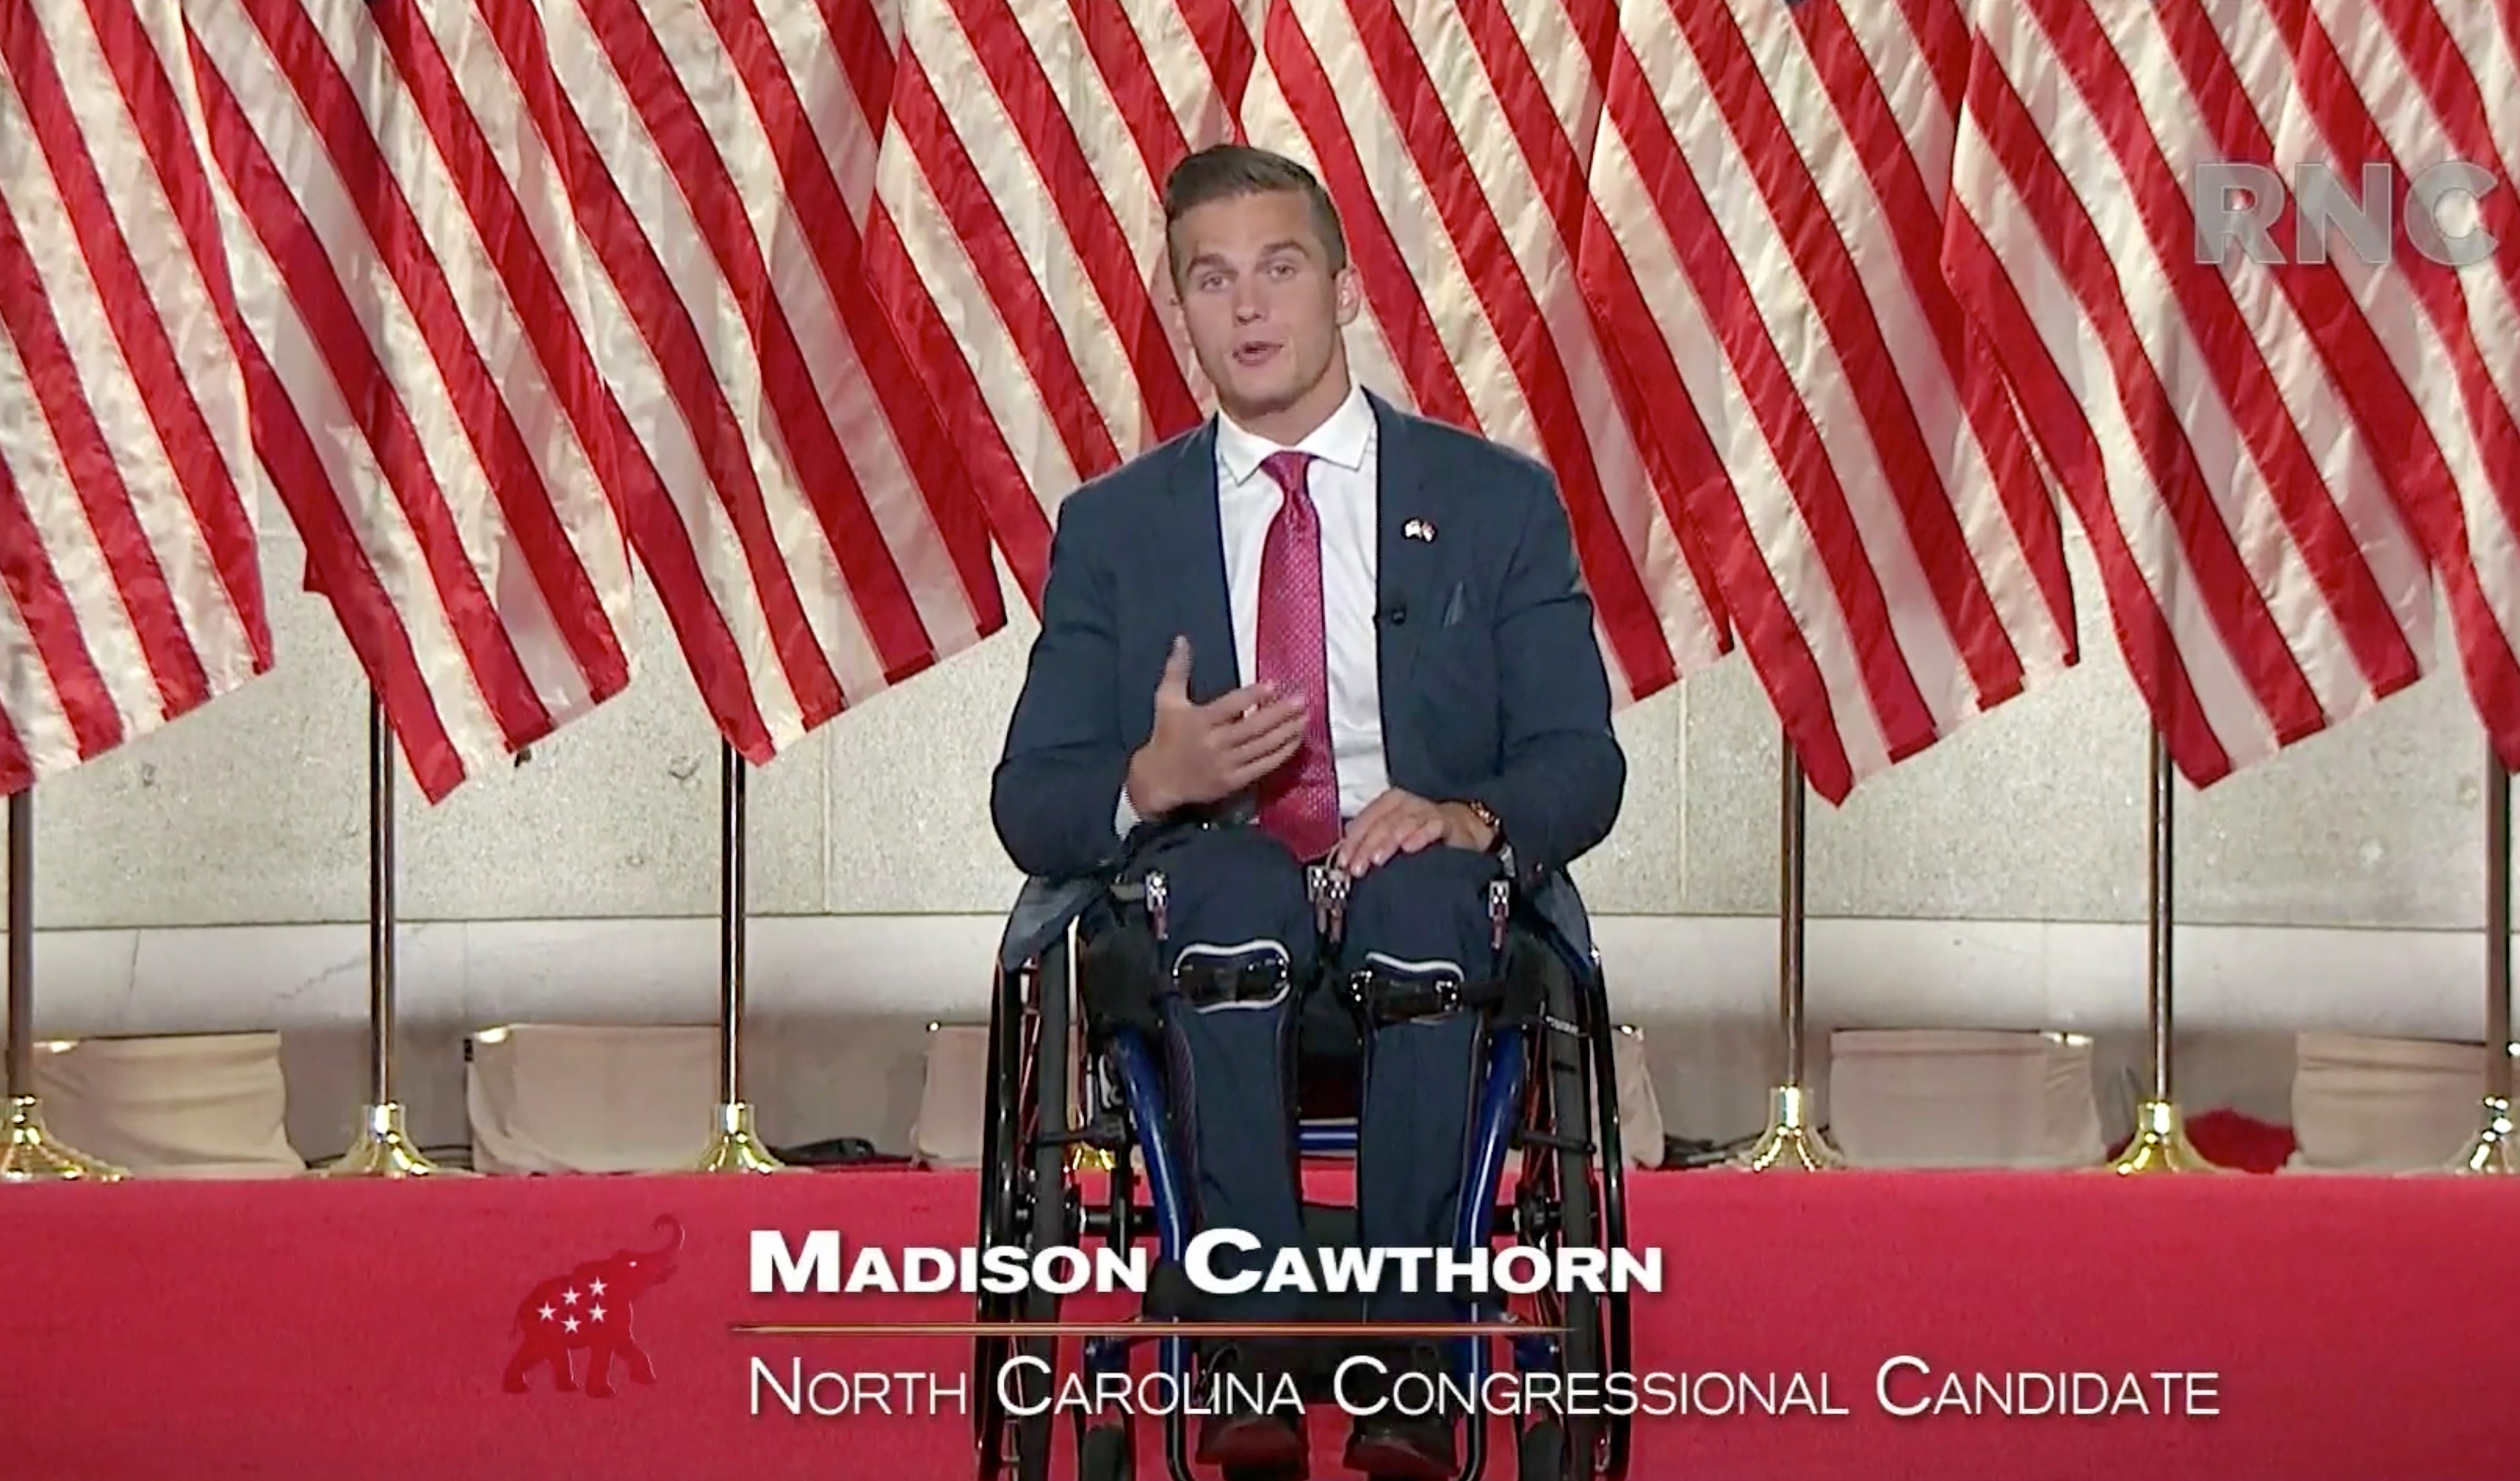 In this screenshot from a livestream of the 2020 Republican National Convention, North Carolina congressional nominee Madison Cawthorn gives a speech on Aug. 26, 2020.